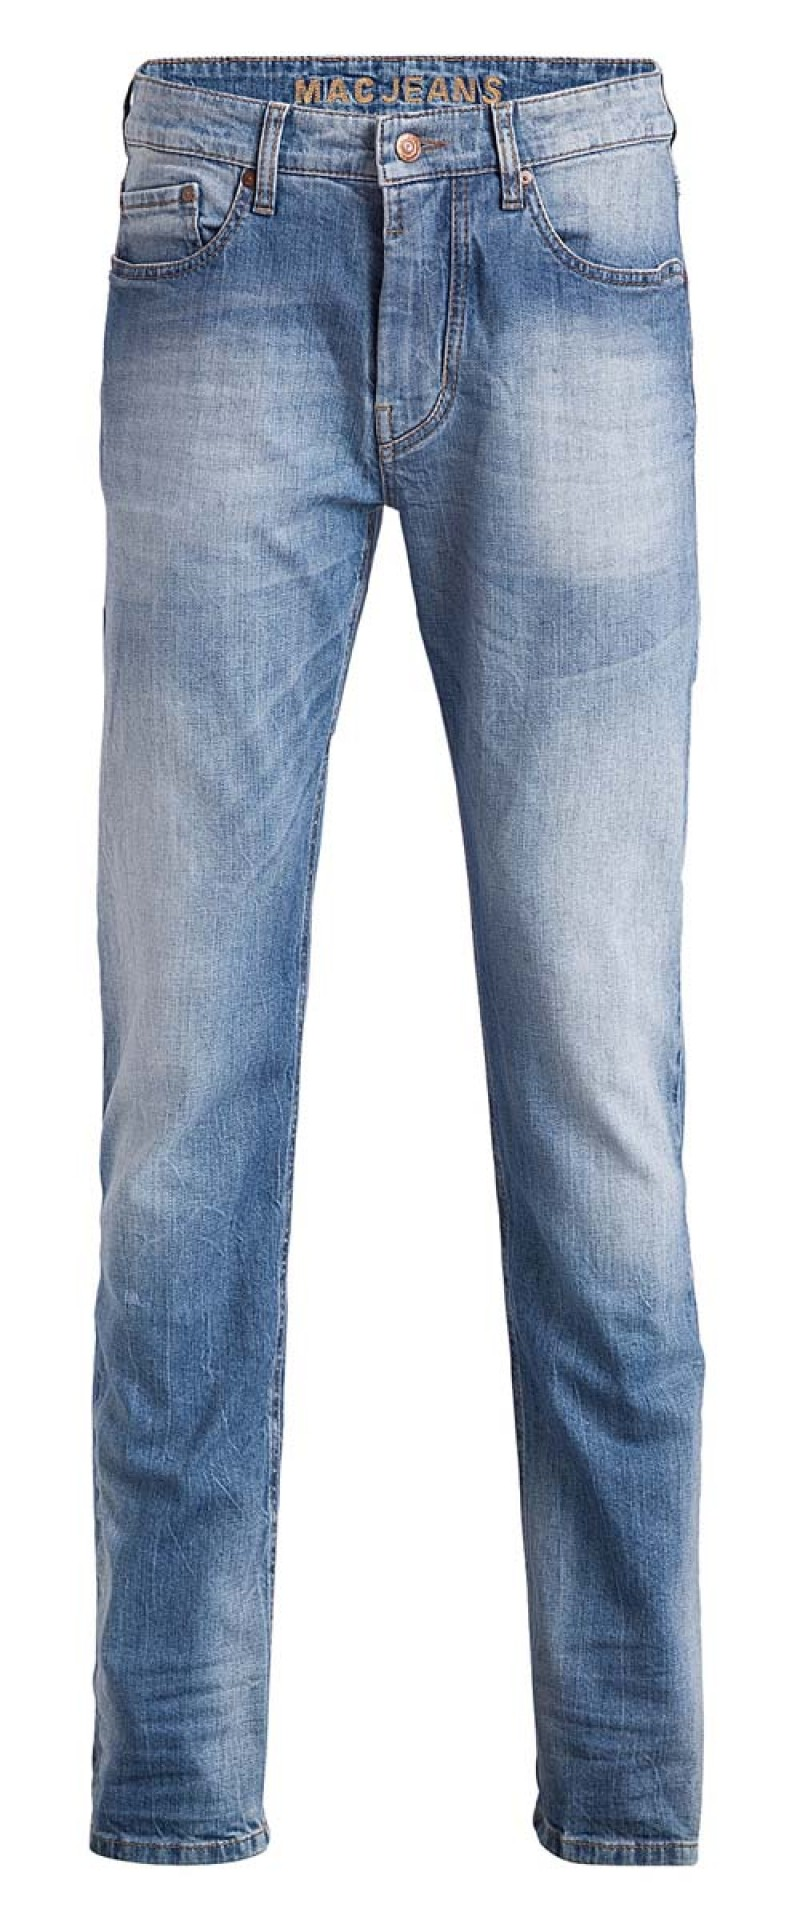 mac jeans arne slim leg summer 3d vintage wash